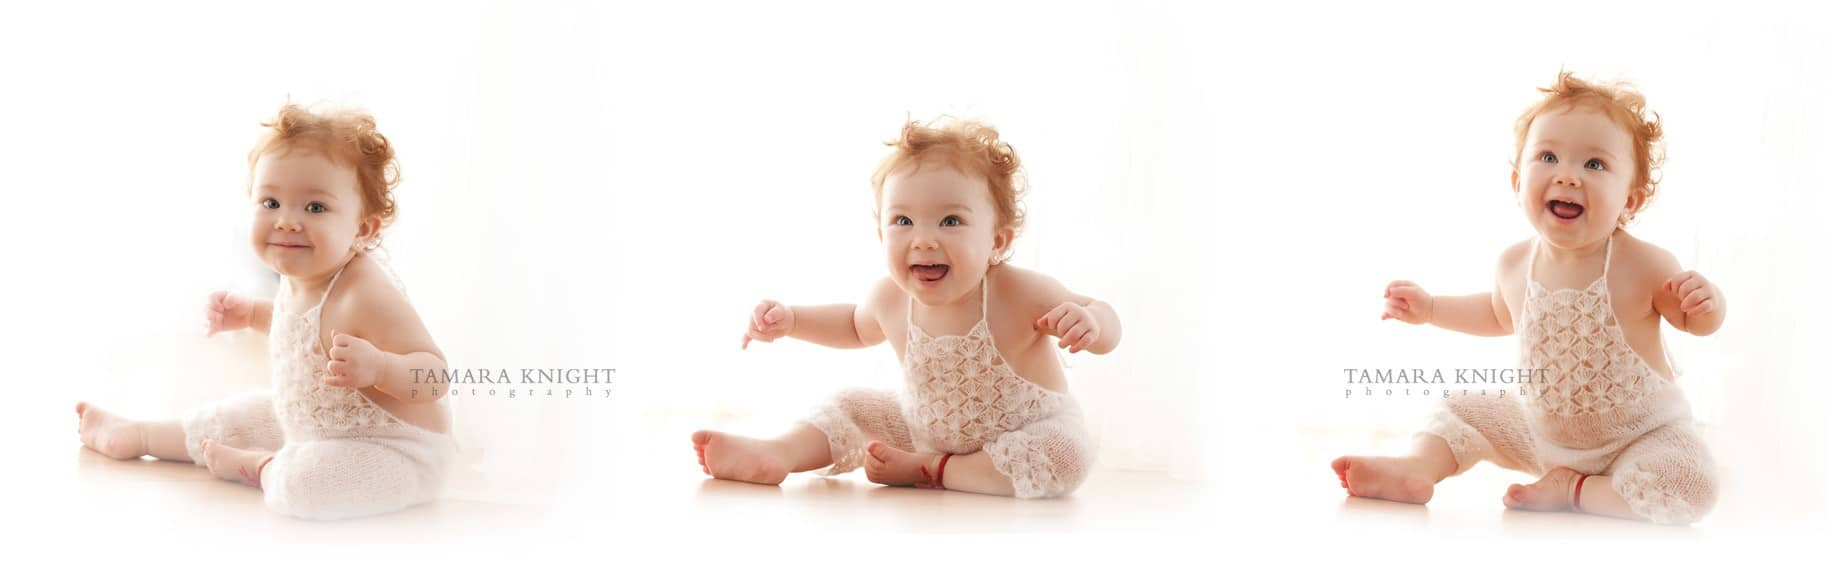 A smiling and dancing baby girl is sitting on the floor done by Orlando photographer in Orlando studio. family photographer